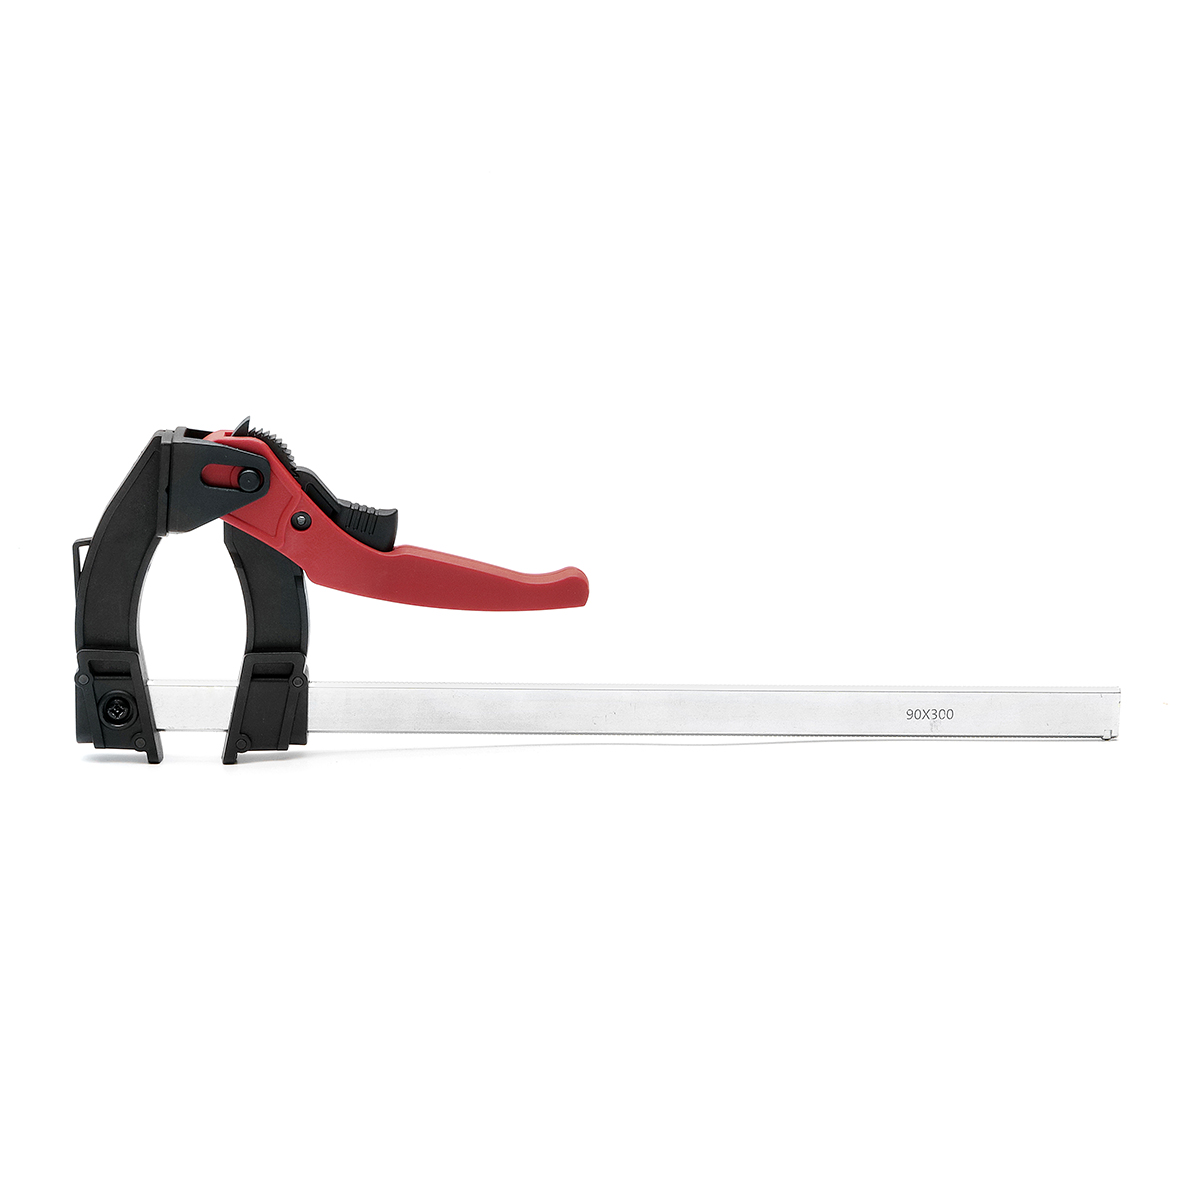 120 Degree Adjustable Quick Grip Clamp Woodworking F Clamp 80x 100/160/200/250/300mm